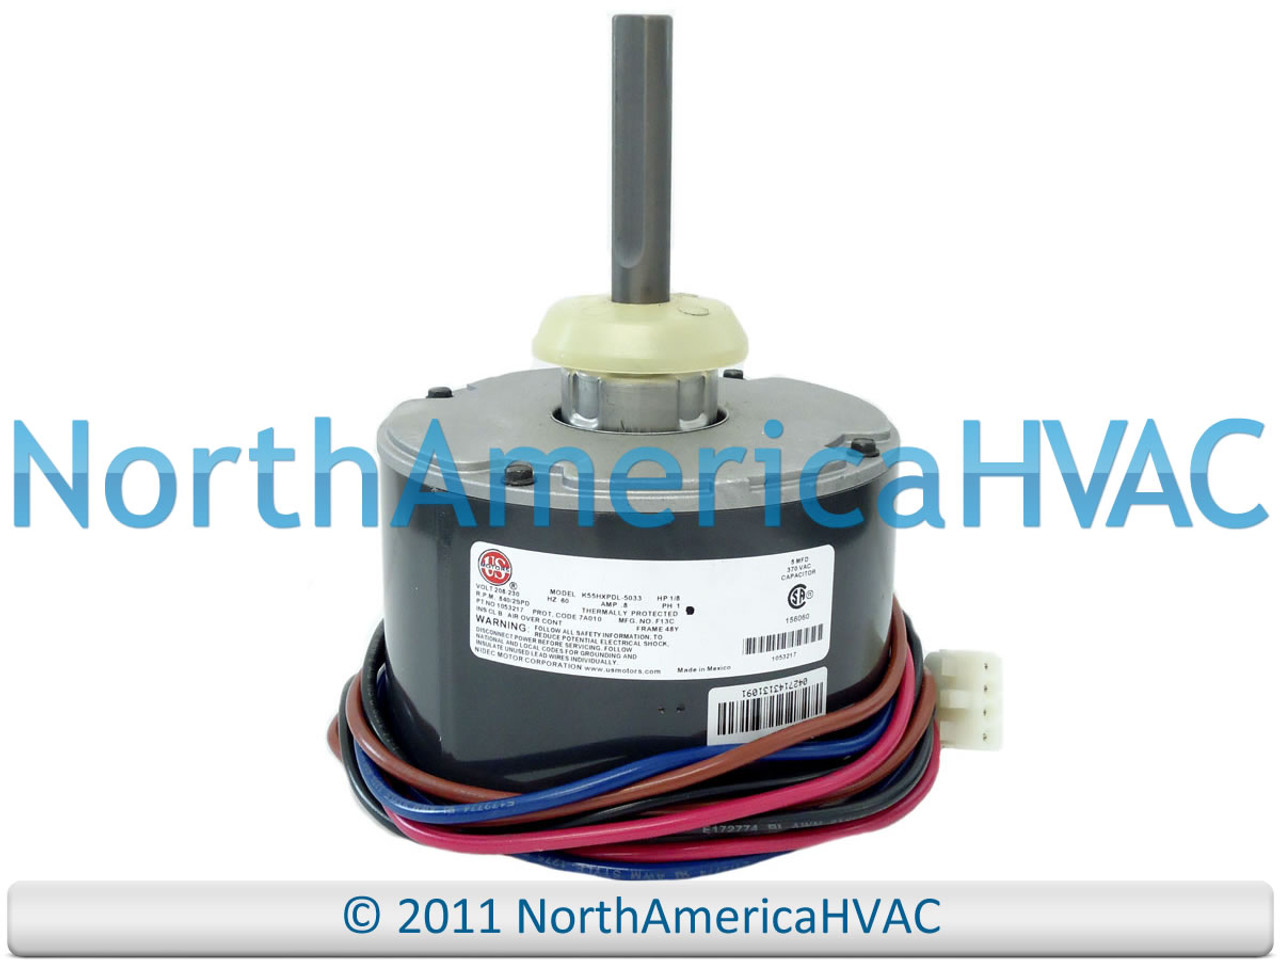 [SCHEMATICS_4US]  ICP Heil Tempstar Emerson 1/8 HP 230v Condenser FAN MOTOR HQ1053217EM  1053217 - North America HVAC | Icp Hvac Wiring |  | North America HVAC